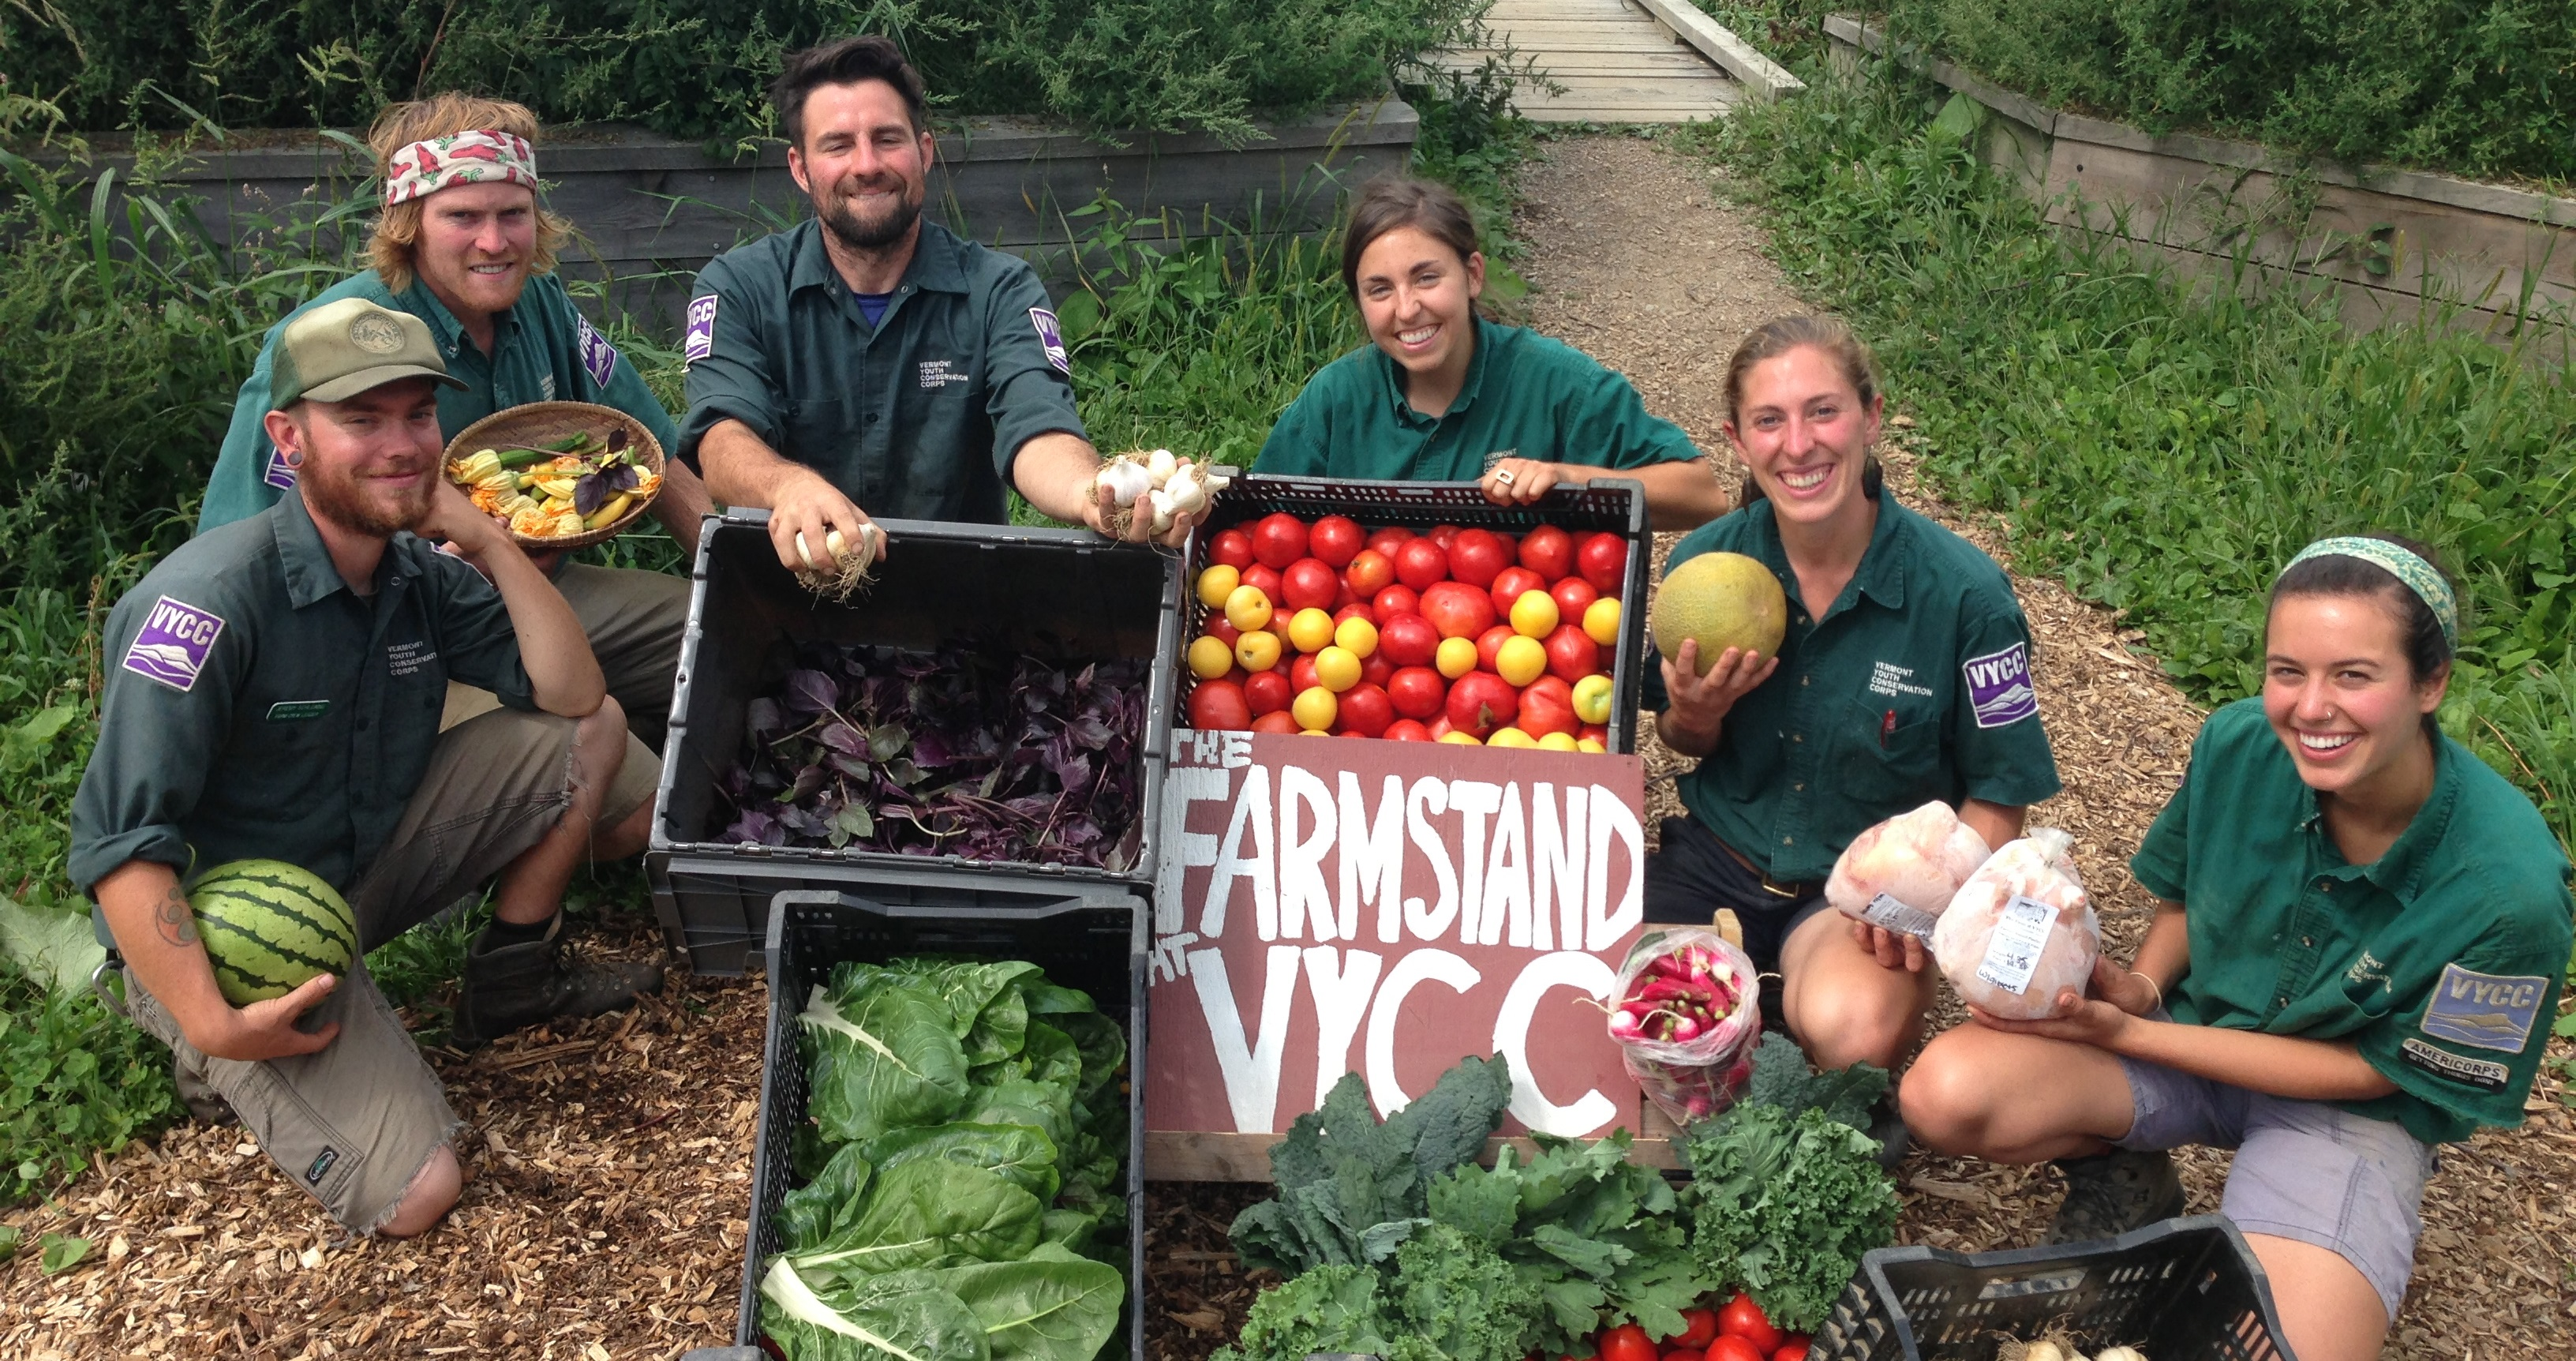 The Food & Farm at VYCC Health Care Share: It Connects Everyone With Food